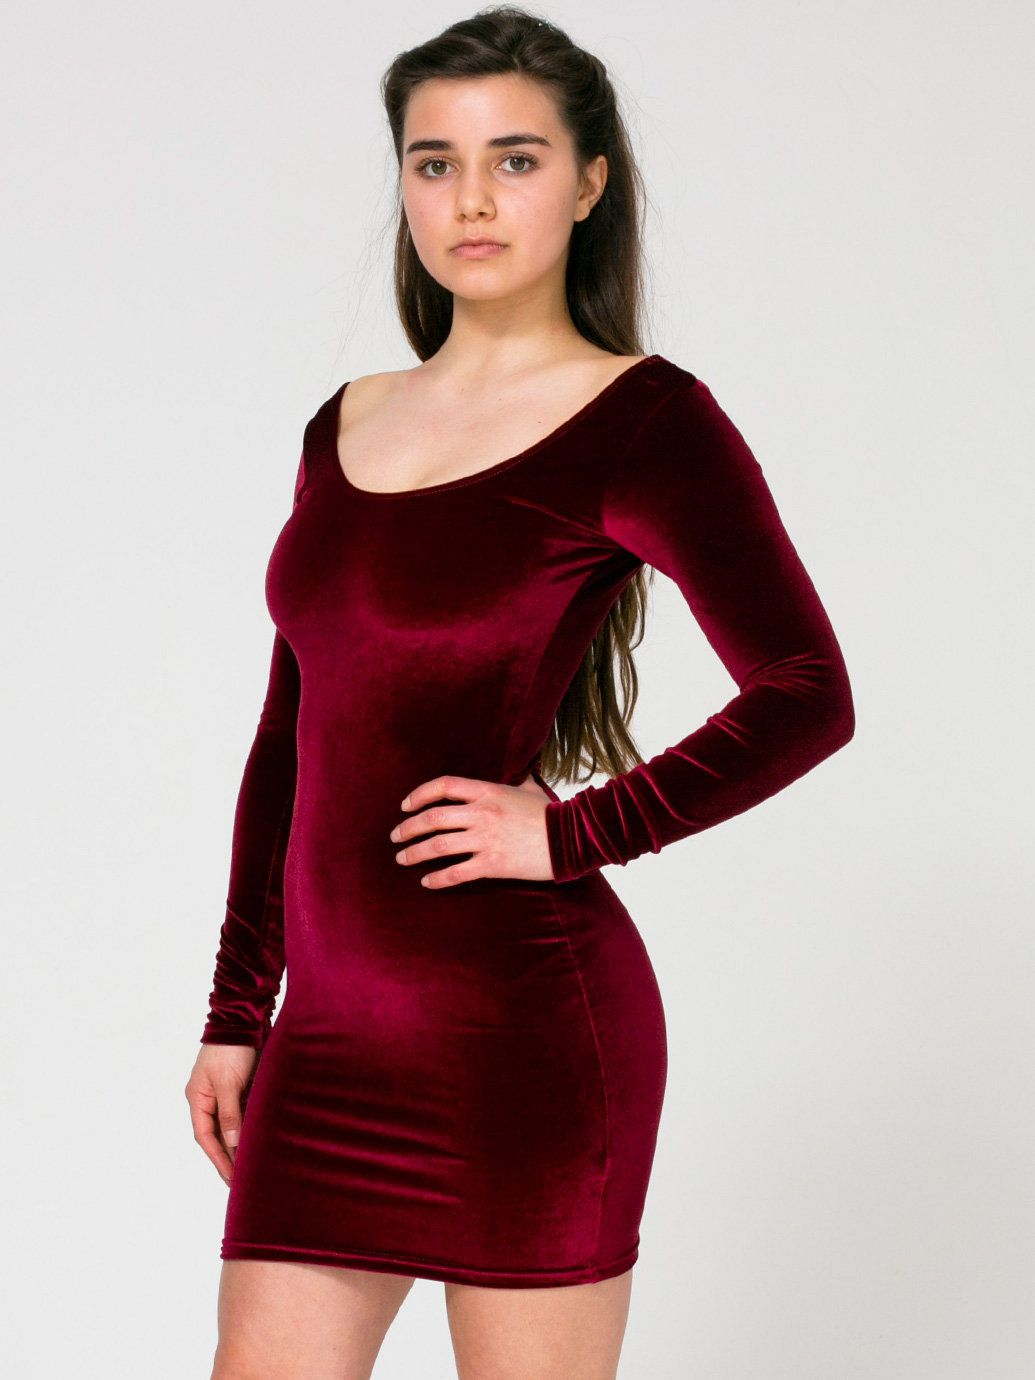 Velvet Long Sleeve Mini Dress £42.00 Burgandy (Cover) Model: Amy